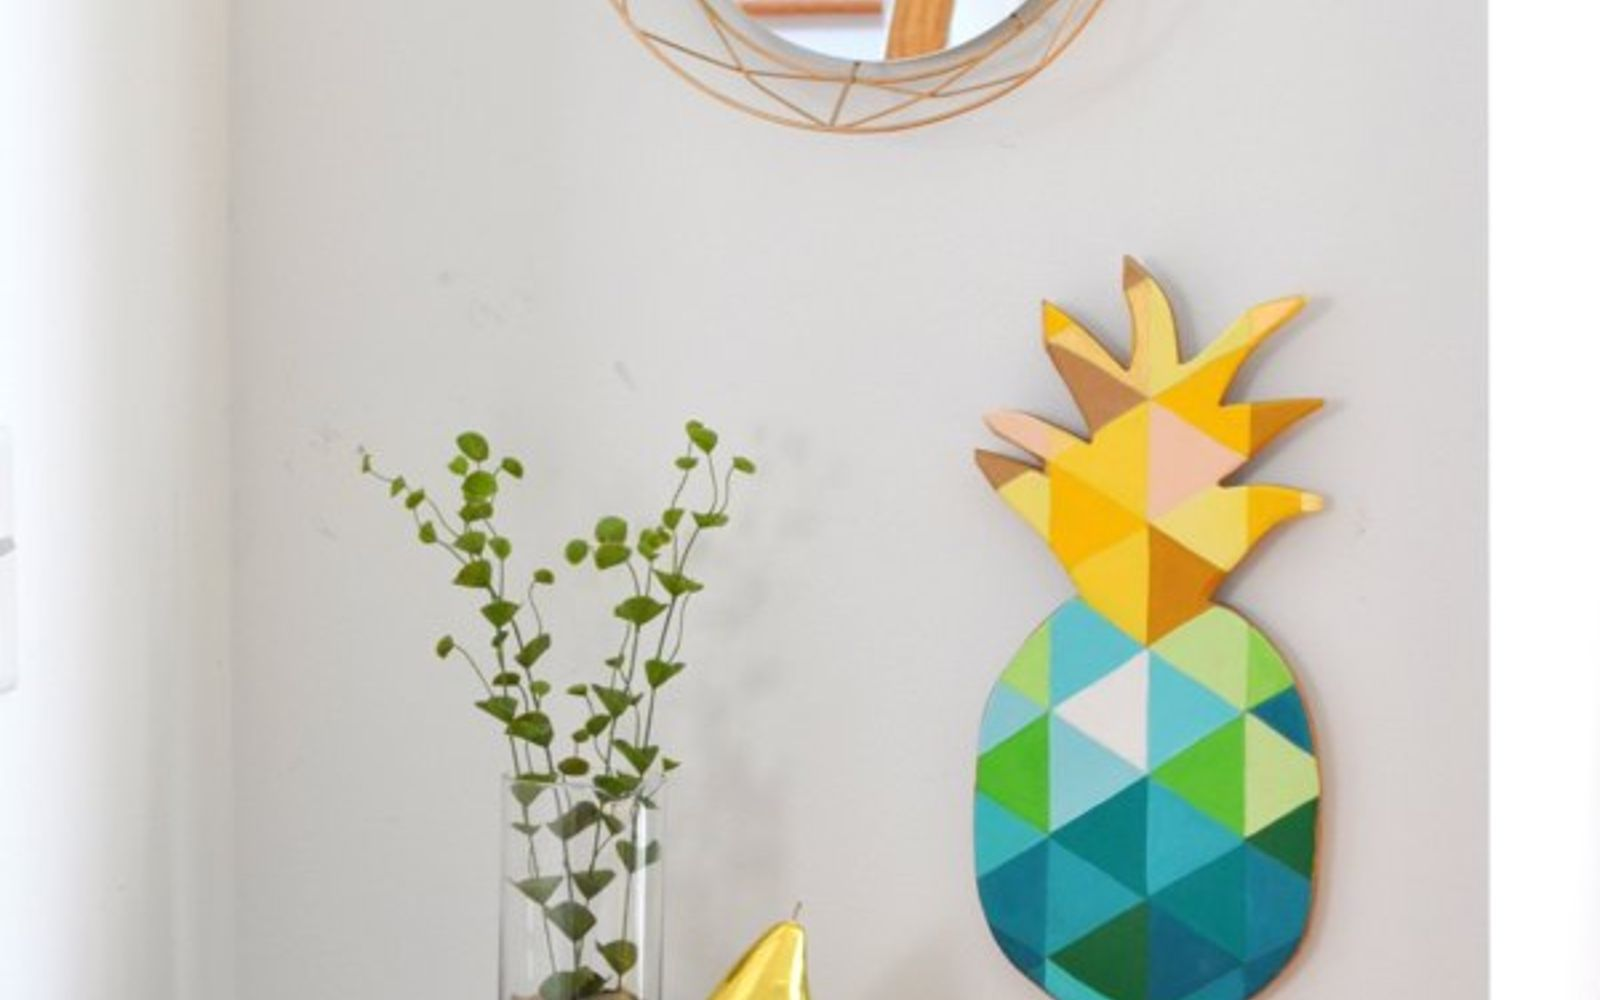 s these are the hottest diy spring trends of 2016, crafts, seasonal holiday decor, Paint geometric art